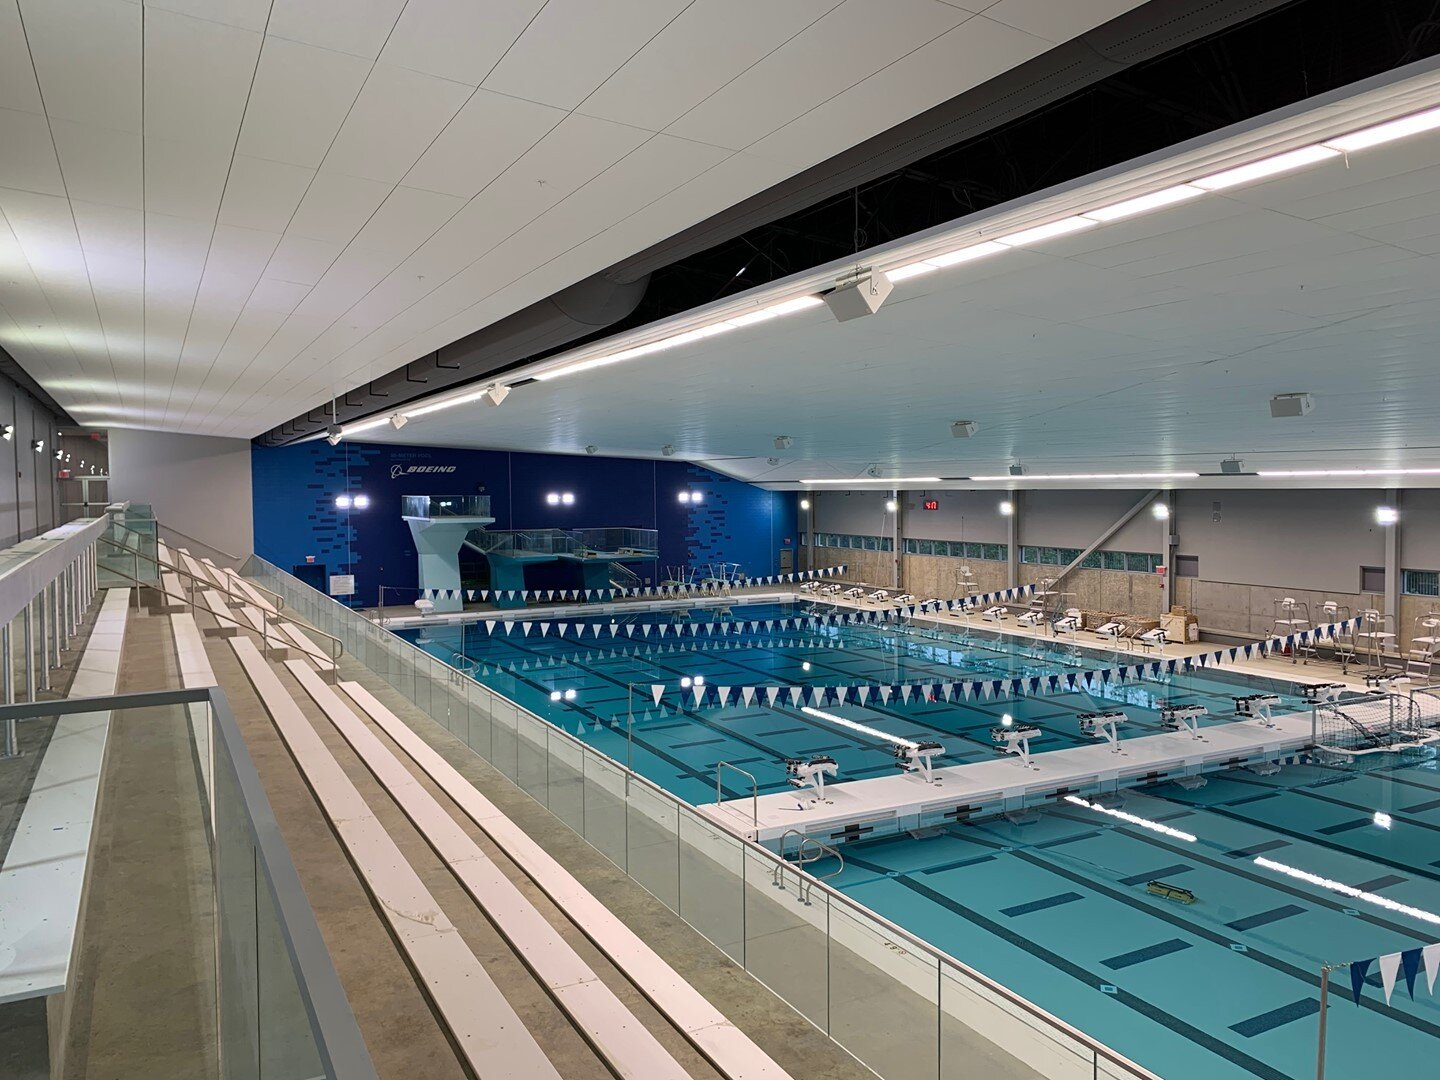 Check out the view from the spectator seating of the 50M Olympic sized swimming pool at the new Long Bridge Park Aquatics and Fitness Center in Arlington County. The pool is equipped with a gutter integrated air evacuator system which removes the chlorine & chemical smell from the surface of the water before it can permeate the natatorium. Also, the HVAC unit specializes in dehumidification to provide a crisp and pleasant experience for spectators. #Construction⠀ ⠀ 📸  Colin O'Donnell, Assistant Project Manager